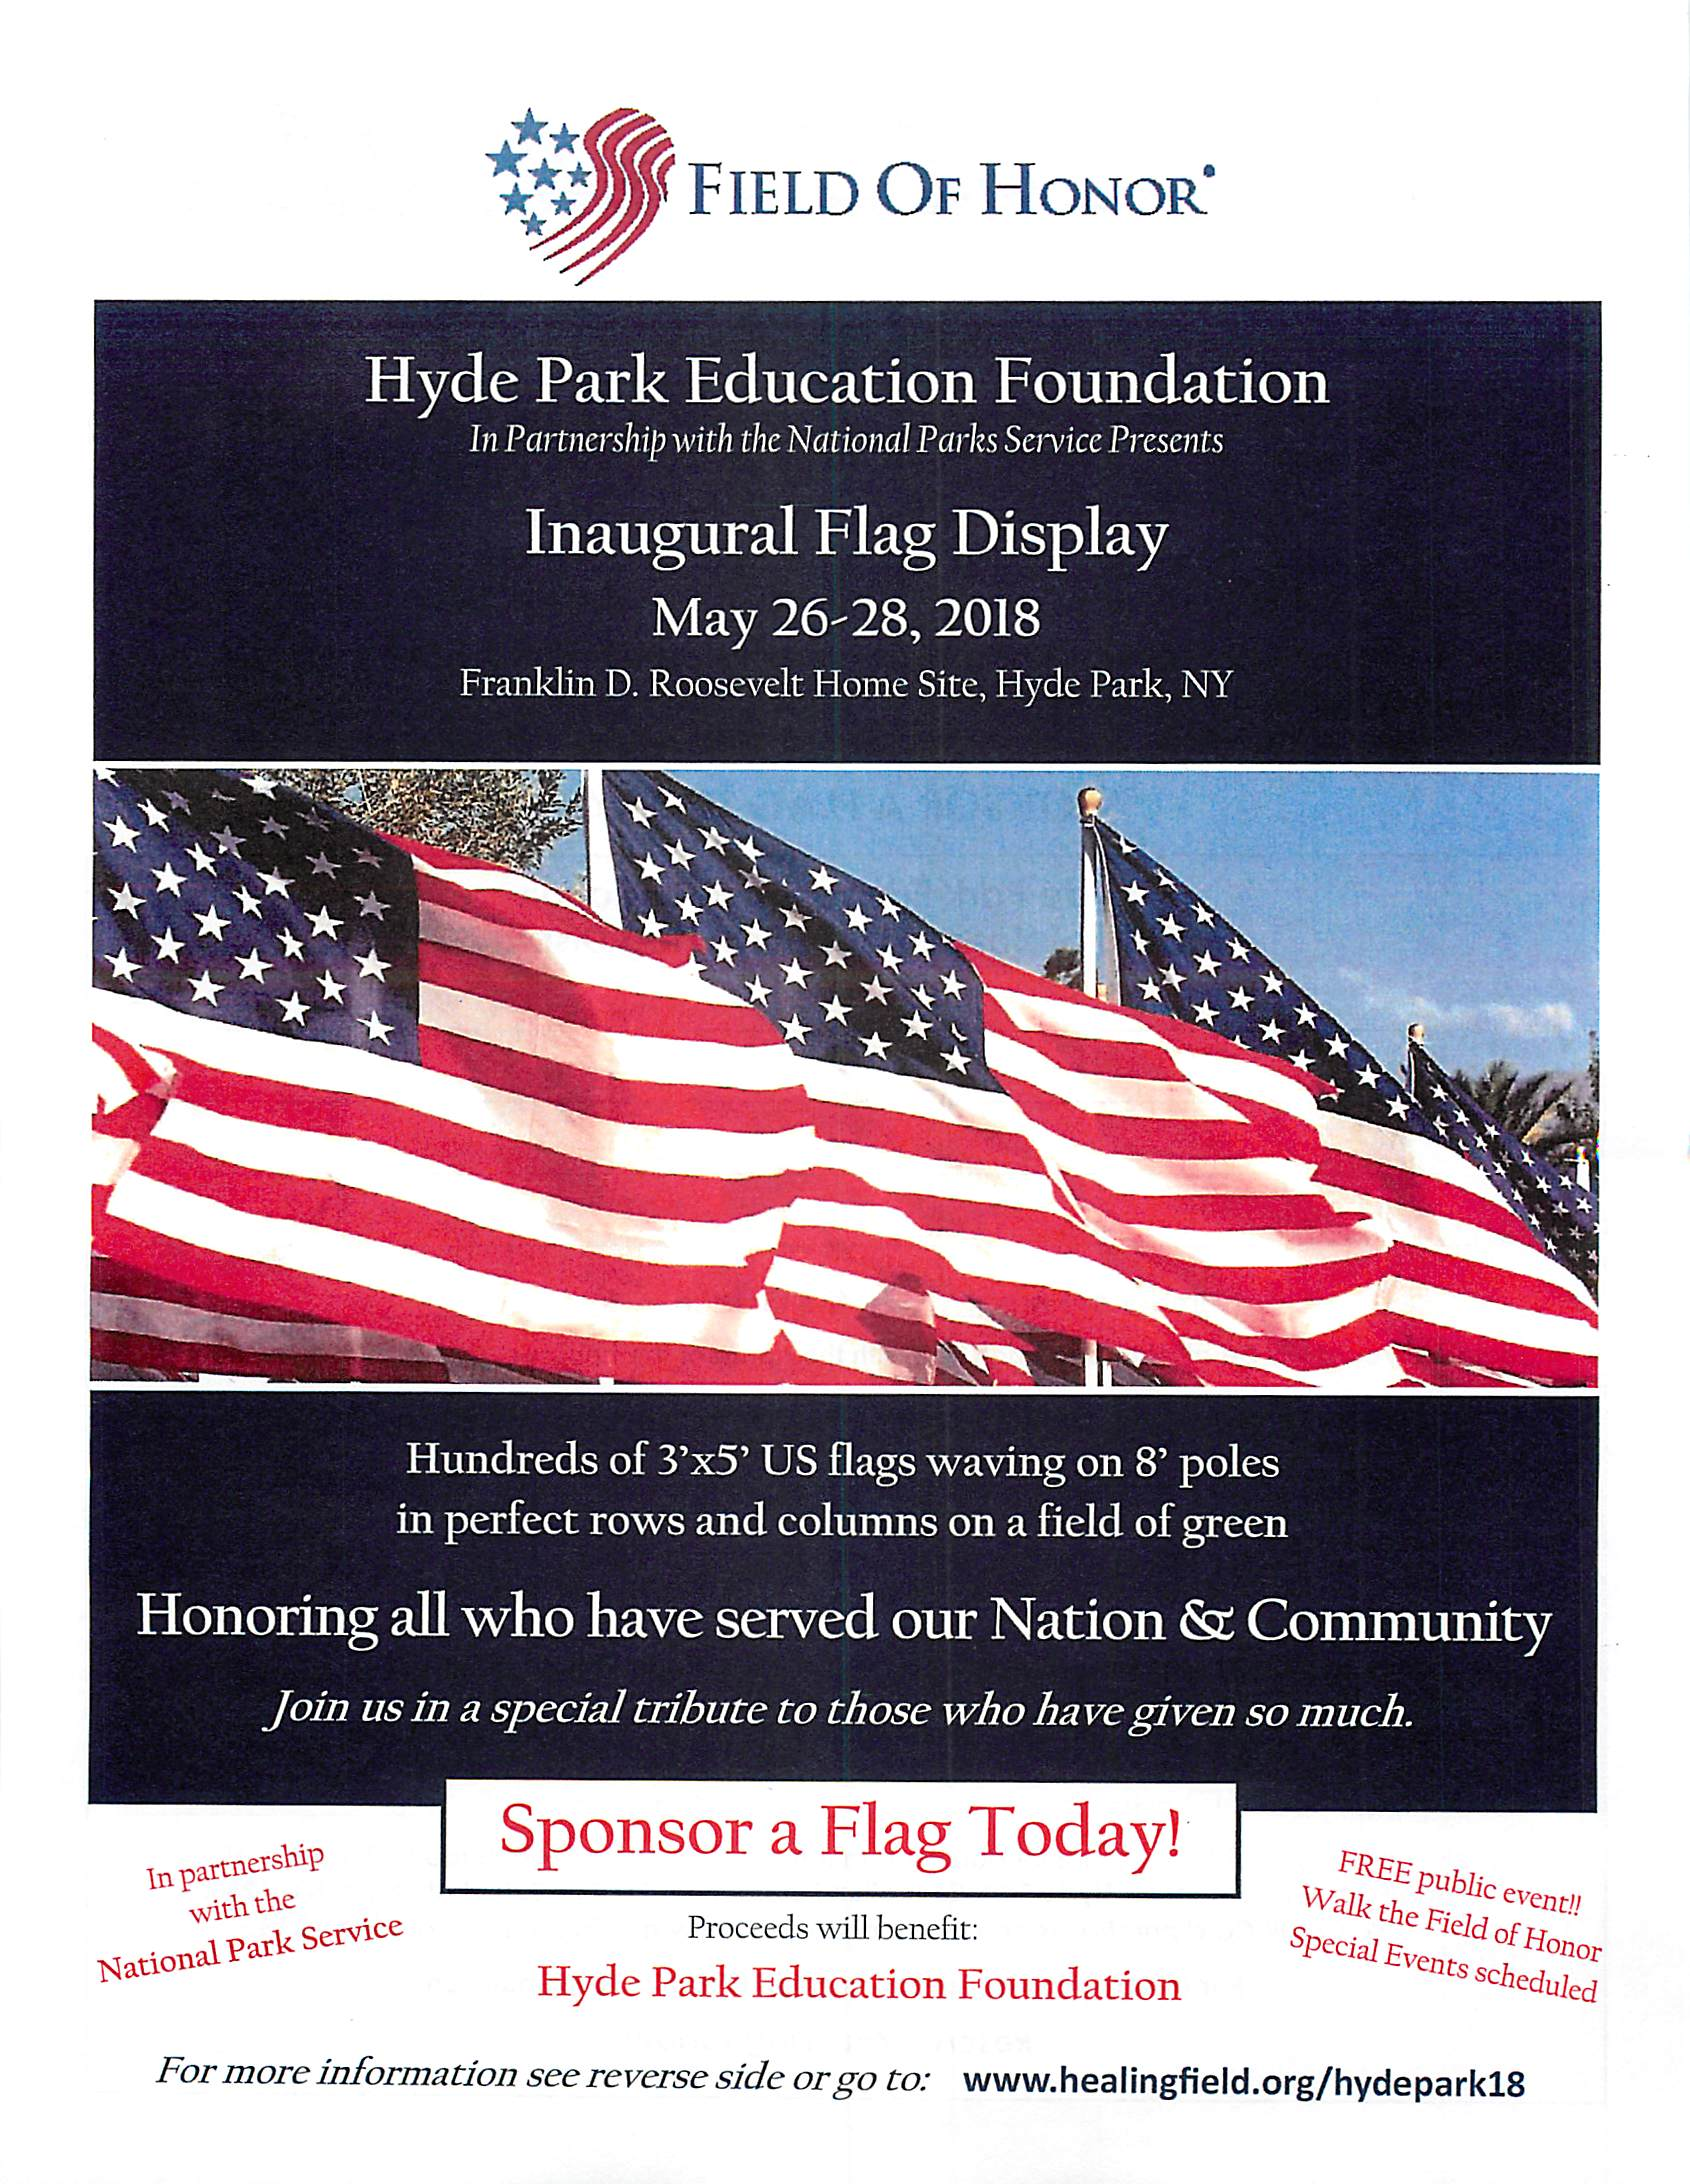 Hyde Park Education Foundation - Field Of Honor Event